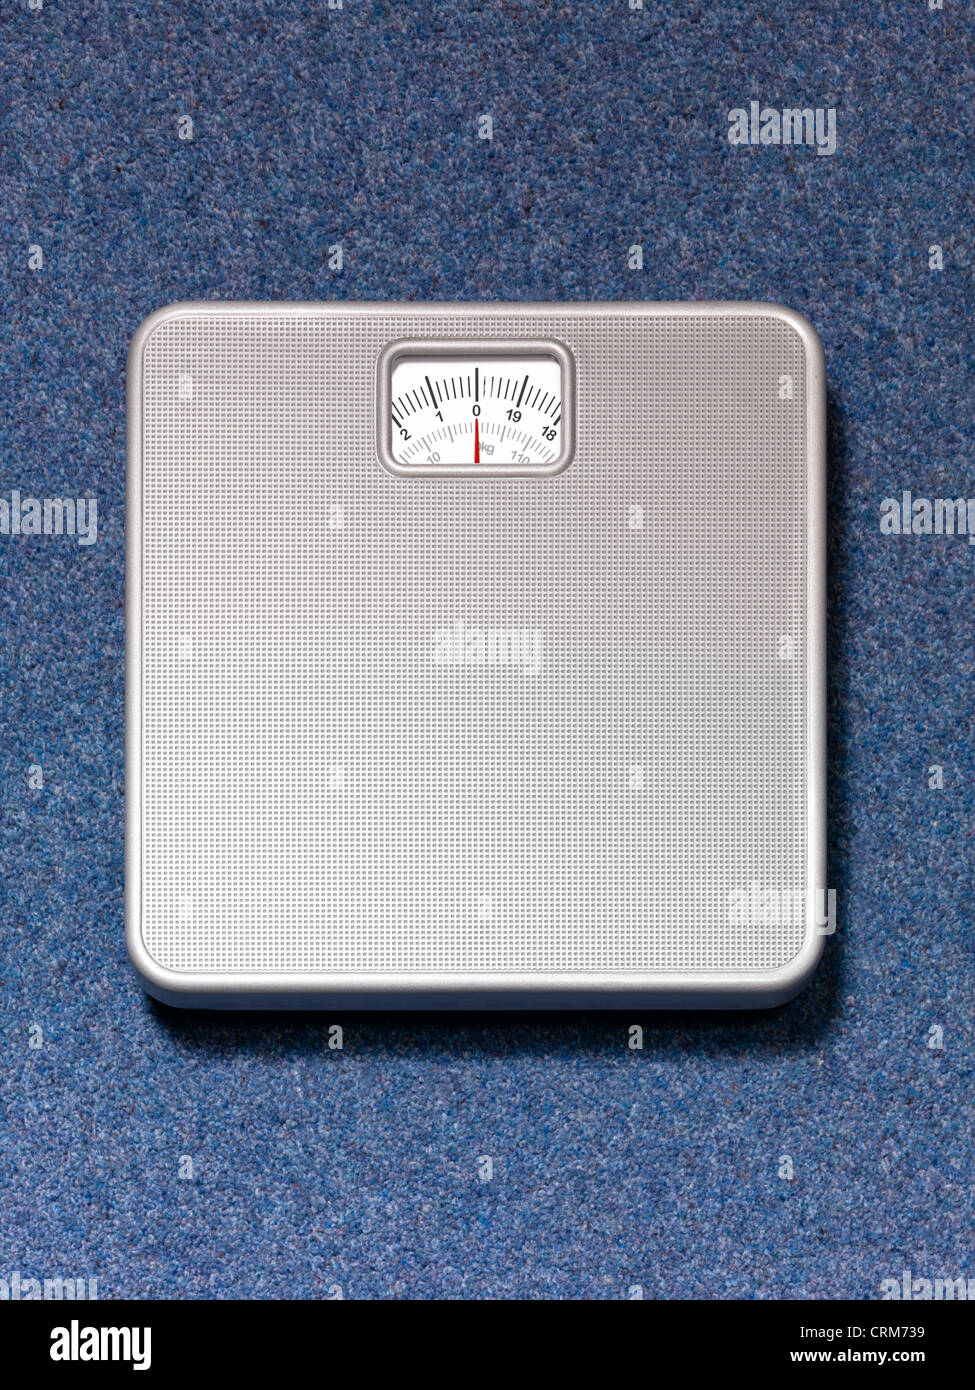 Silver weighing scales on a blue carpet background Stock Photo